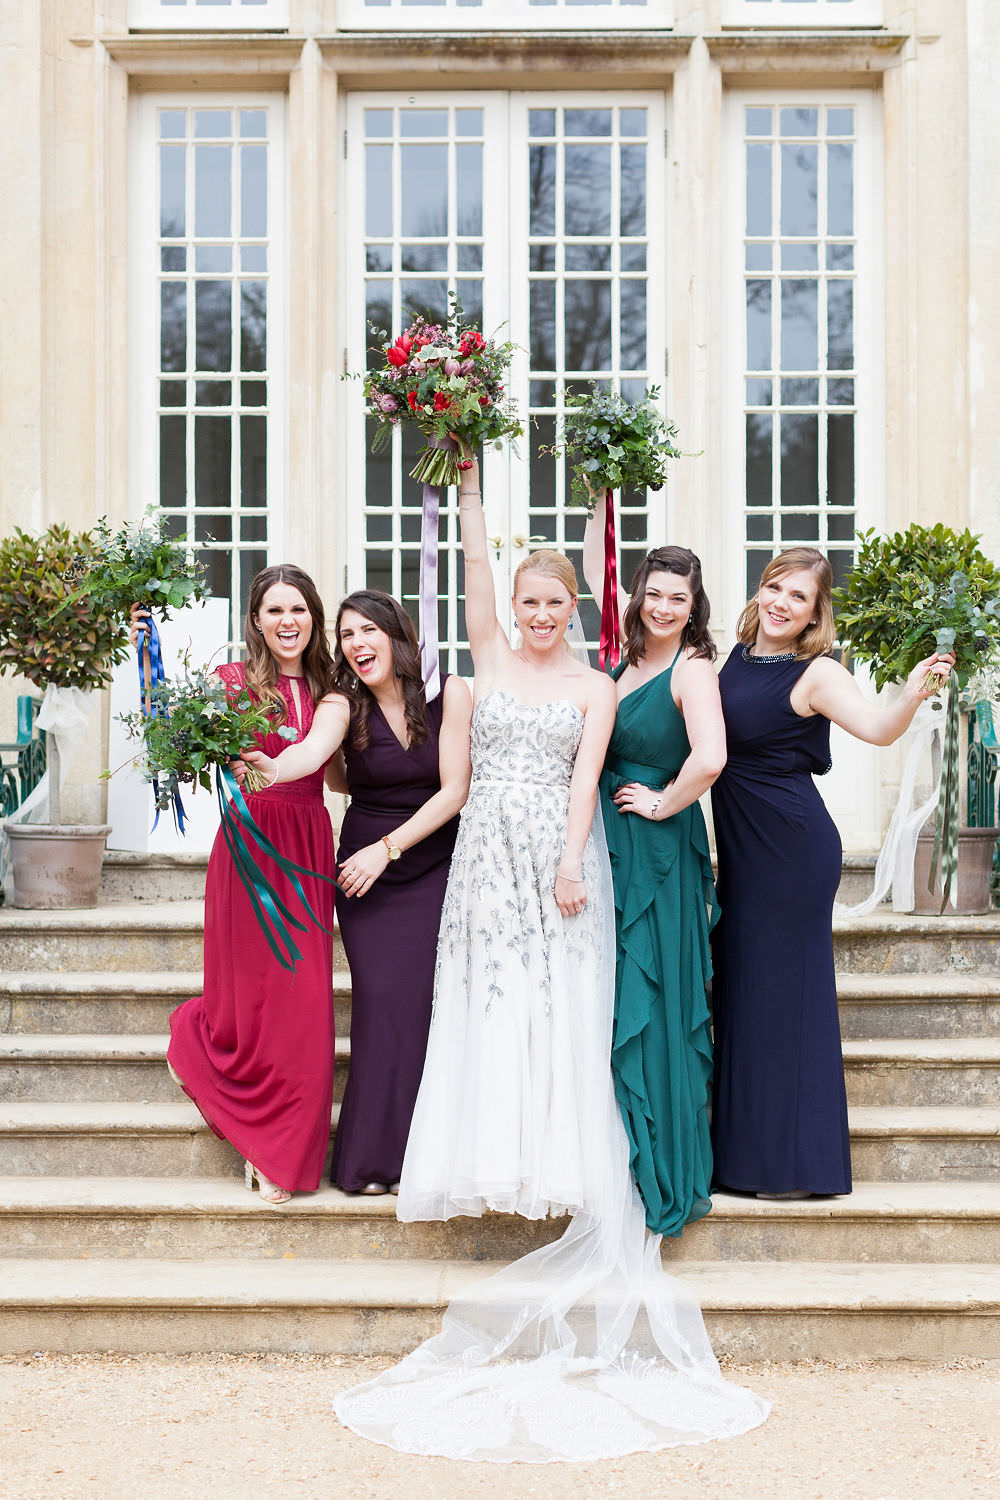 Bridesmaid Dresses Dress Long Maxi Jewel Gem Red Purple Highcliffe Castle Wedding Bowtie and Belle Photography